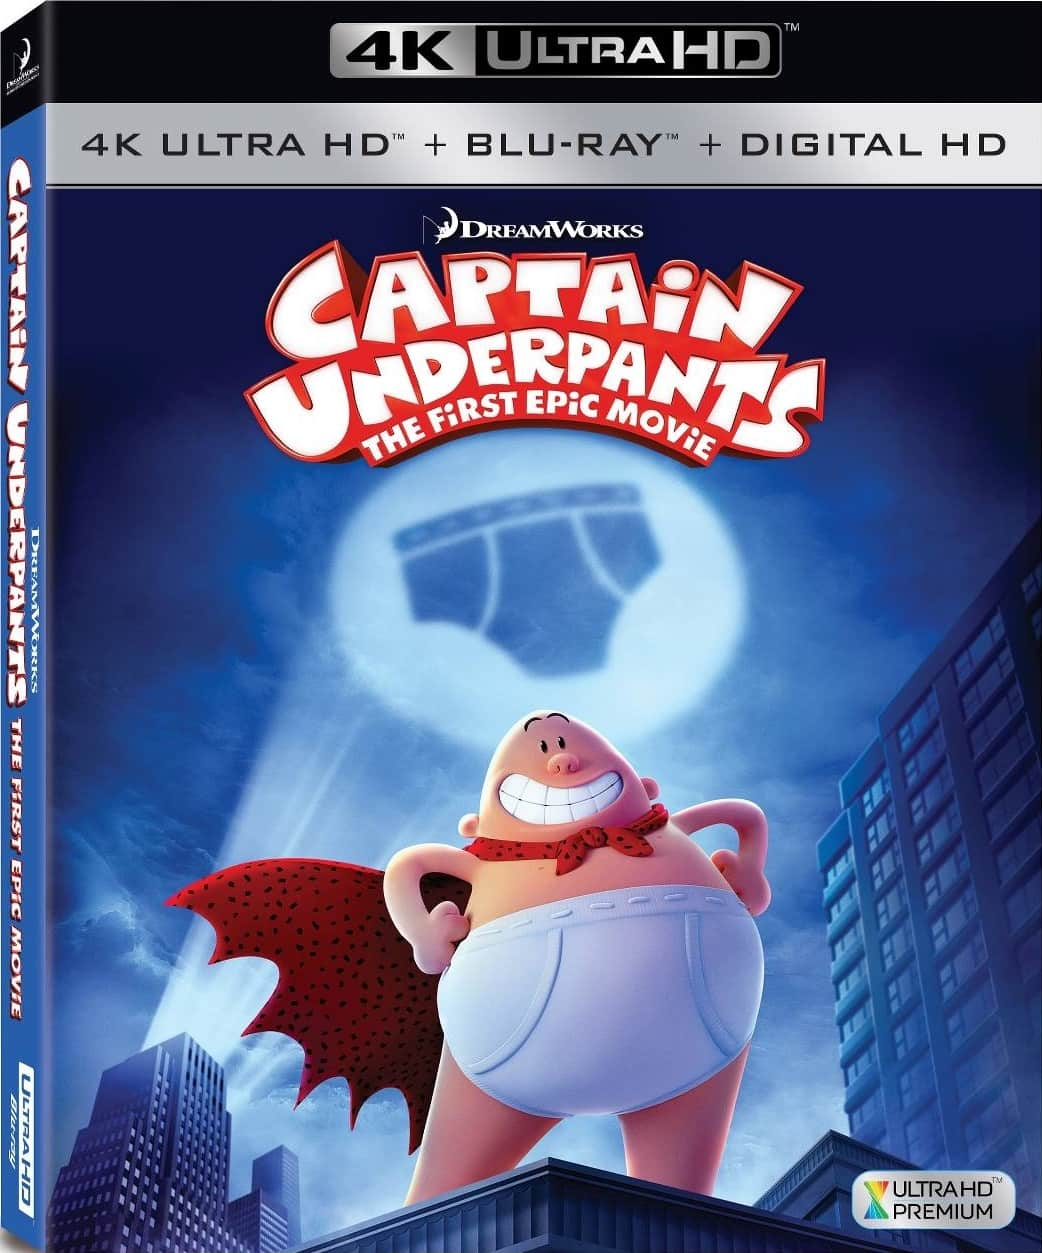 Captain Underpants The First Epic Movie 2017 4K HDR Blu-Ray